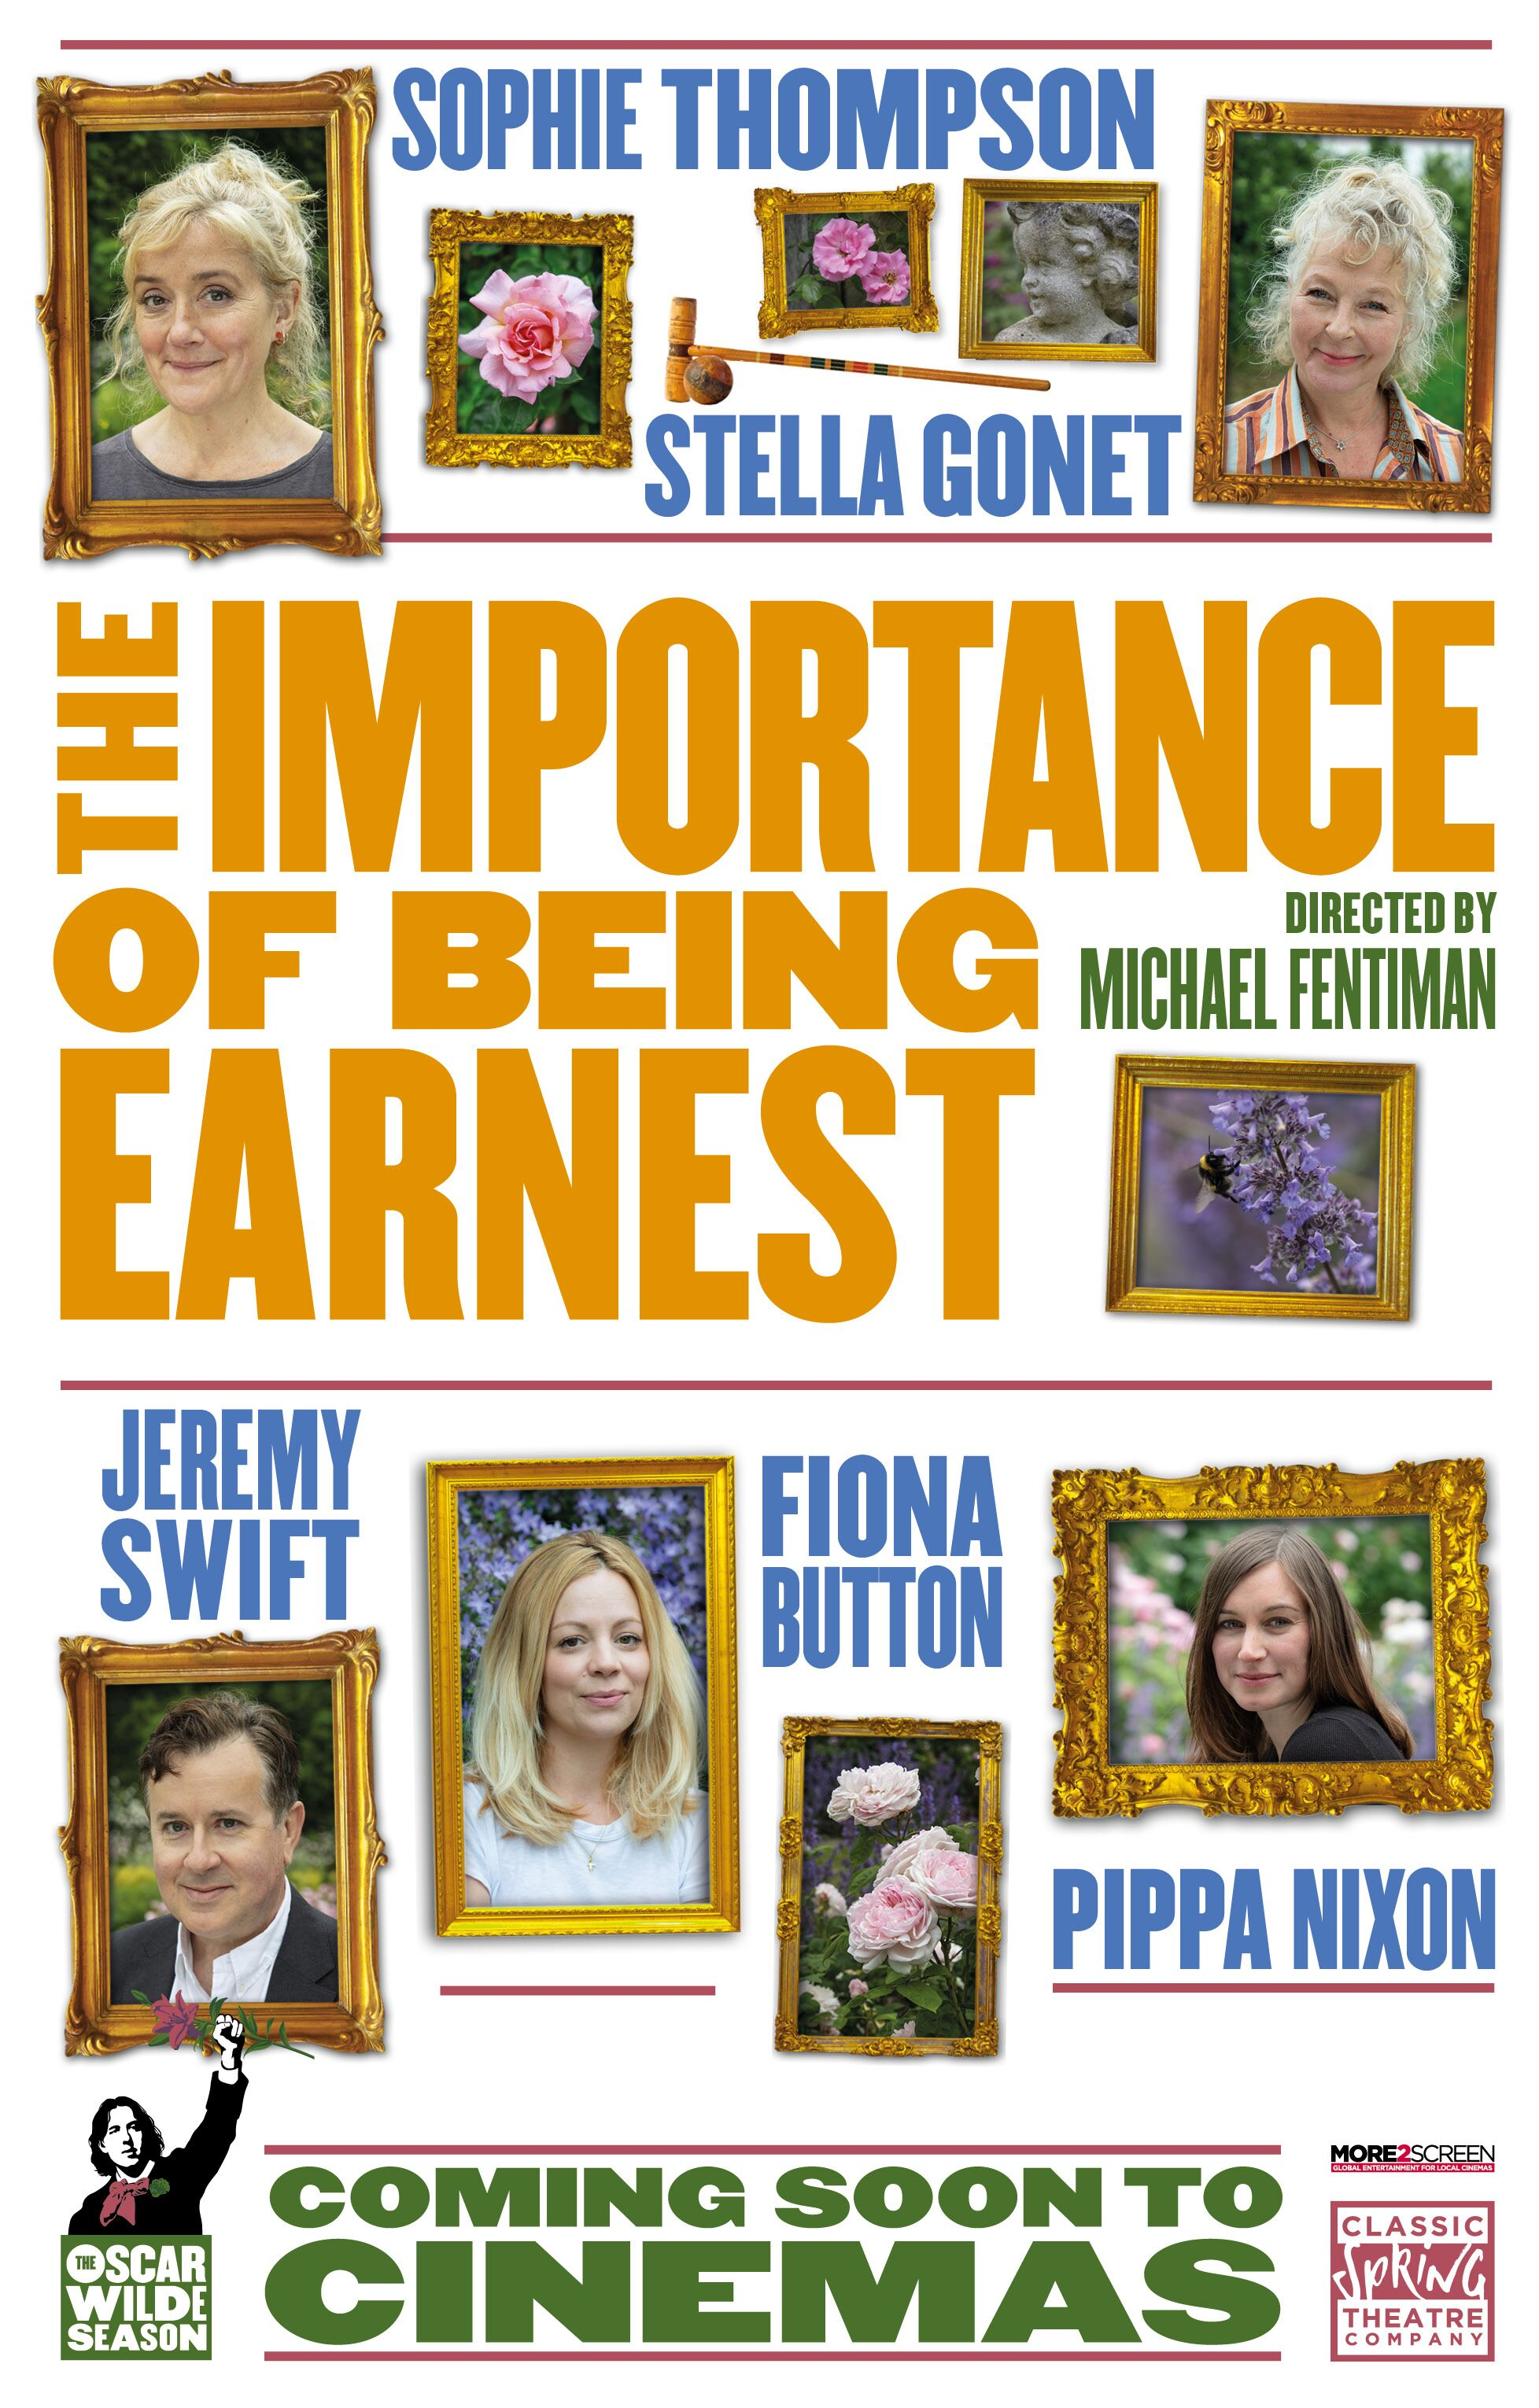 Oscar Wilde Season: The Importance of Being Earnes Poster